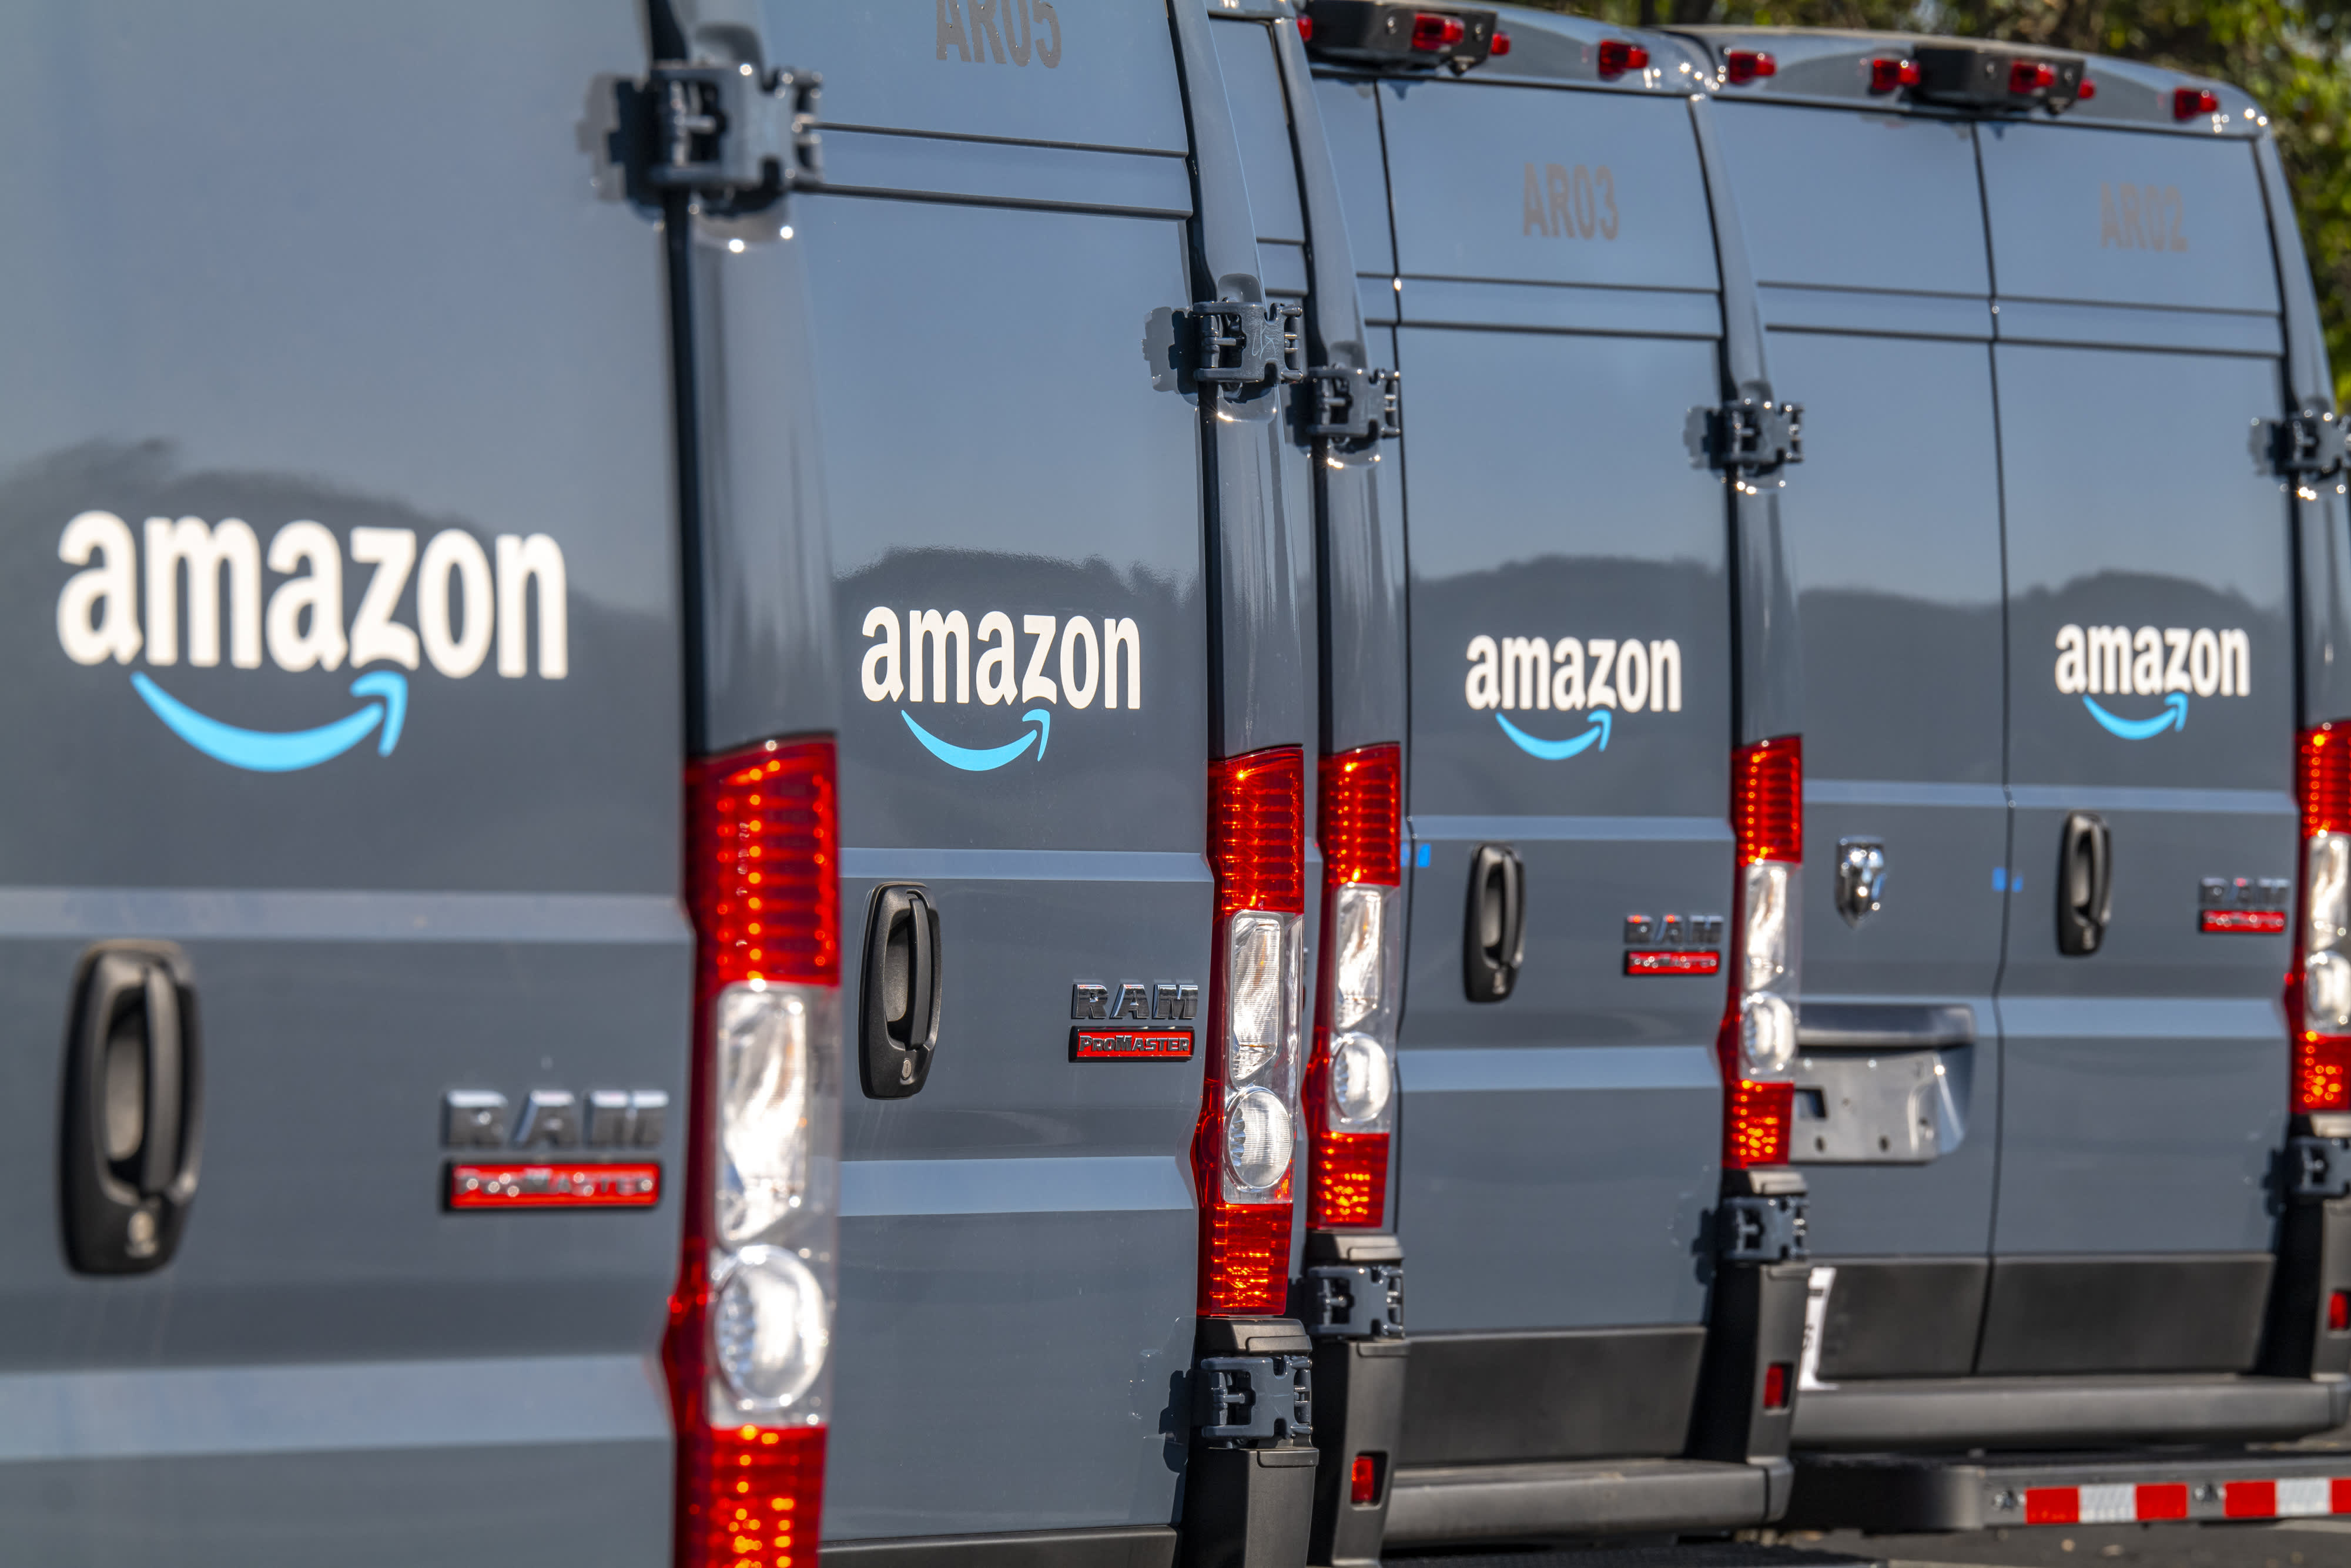 106786928-1604892915282-gettyimages-1229053402-AMAZON_PRIME_DAY.jpeg?v=1619459054